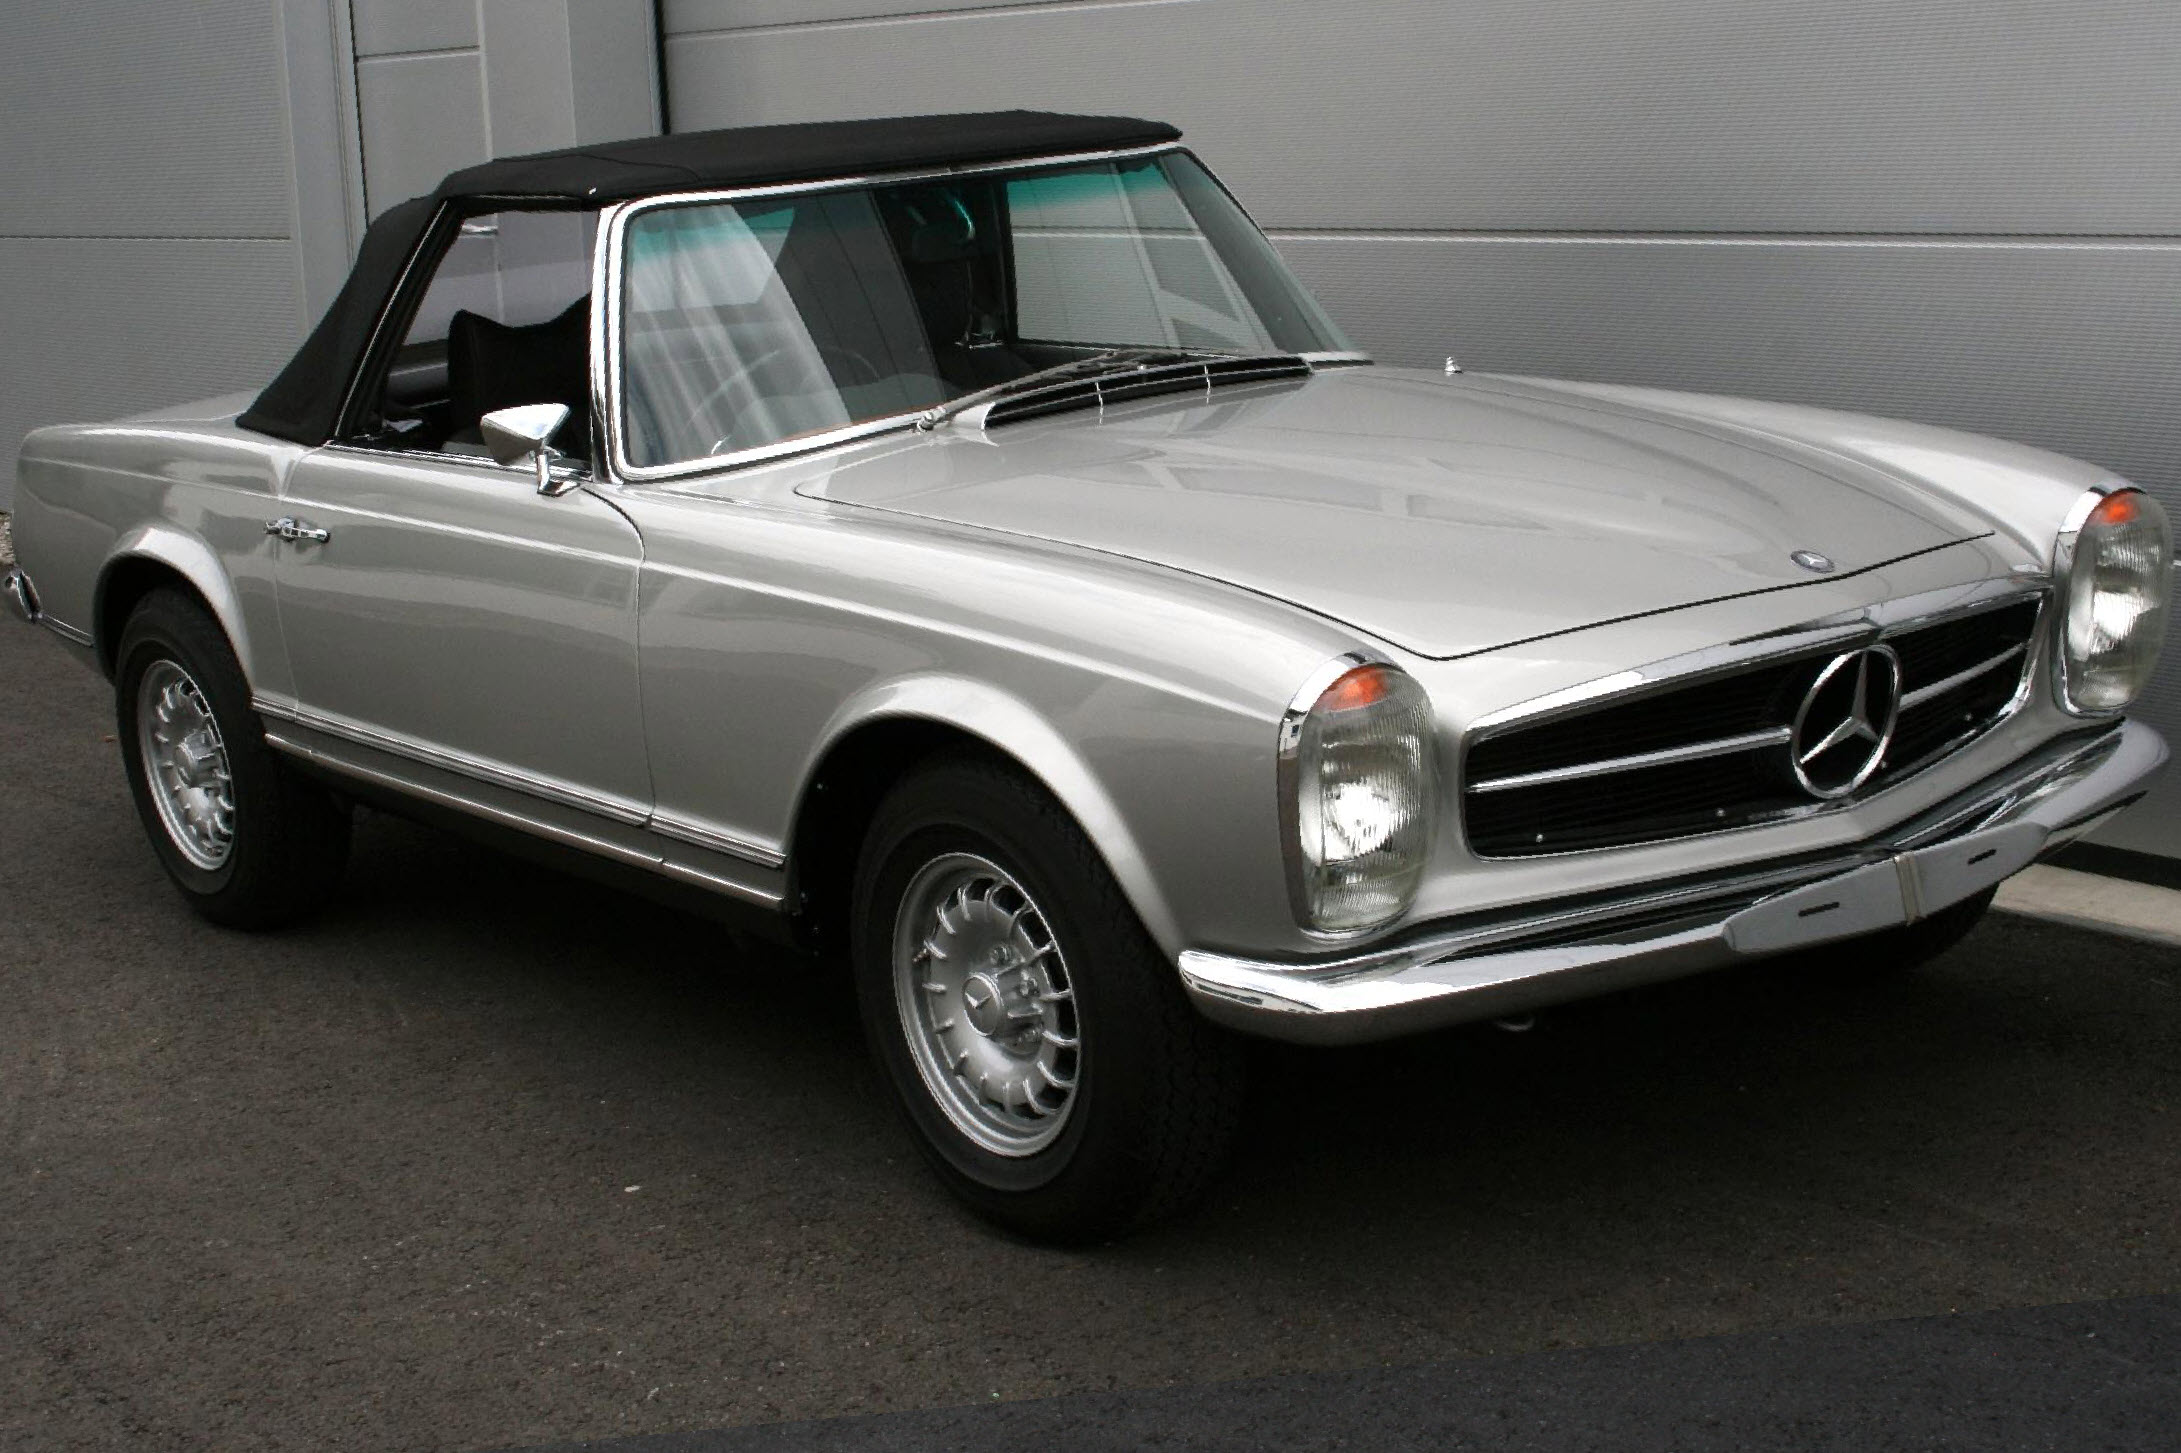 MB 280SL - Restauration 2